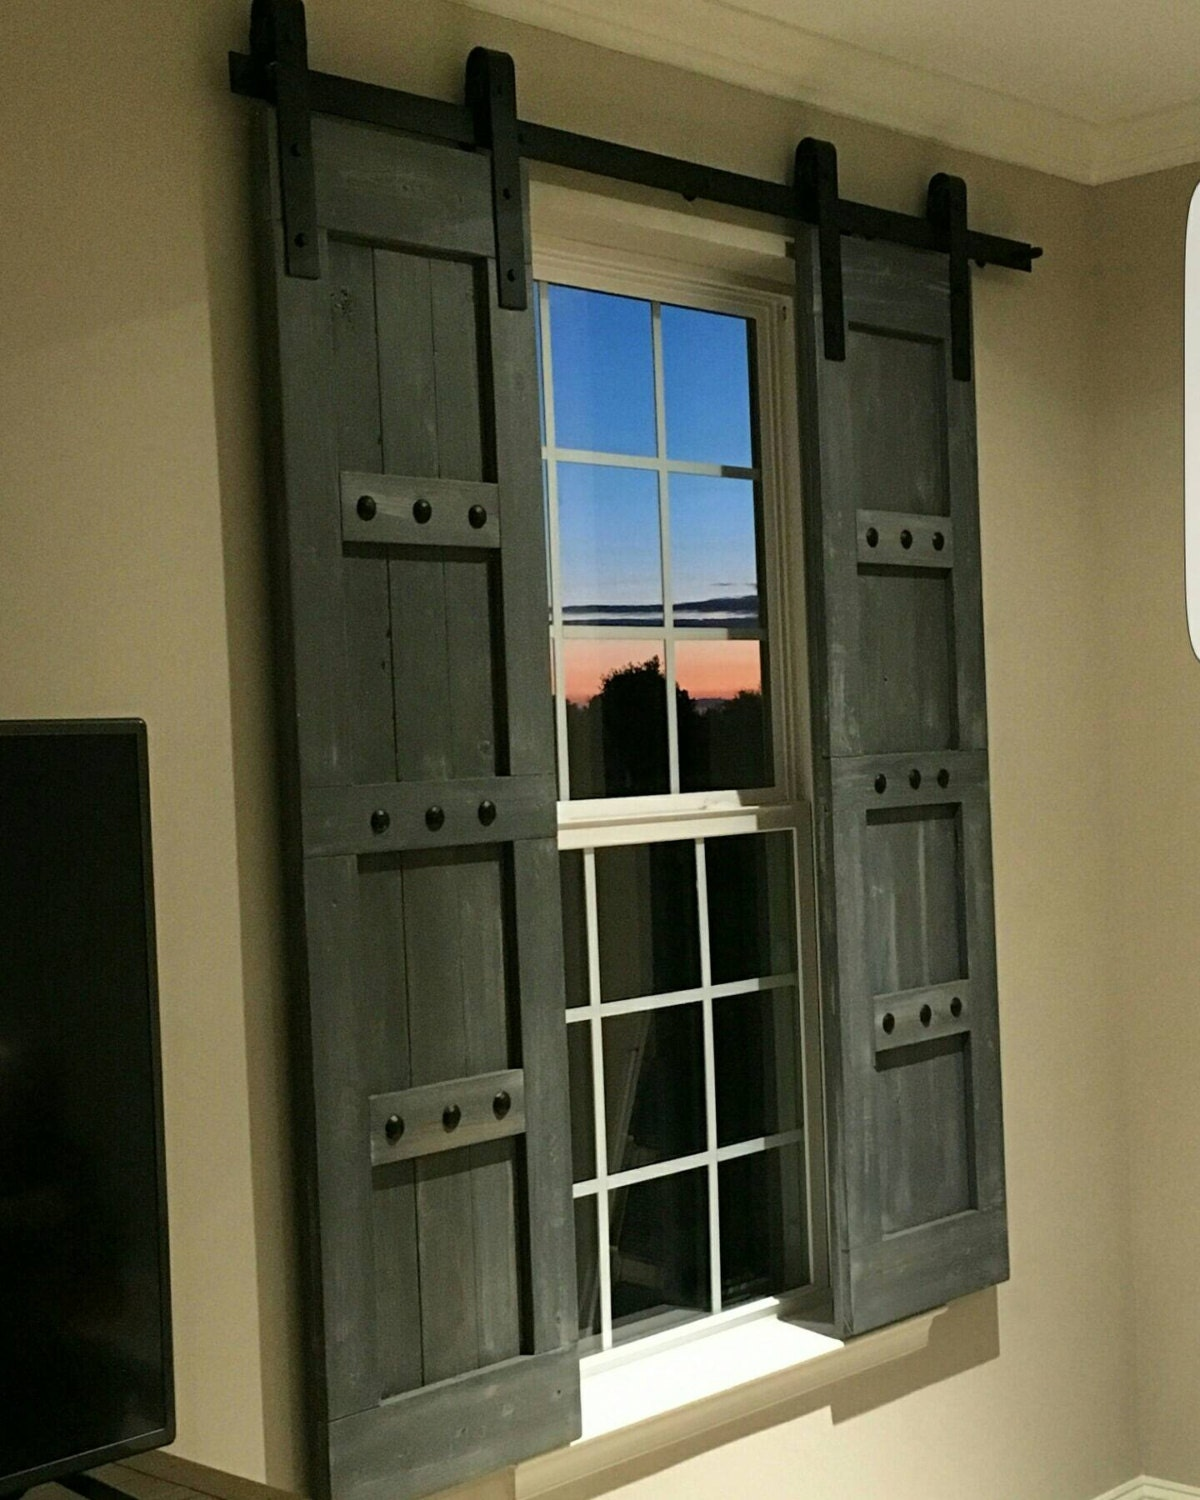 interior window barn door sliding shutters barn door shutter hardware packages available farmhouse style rustic wood shutter - Shutter Hardware